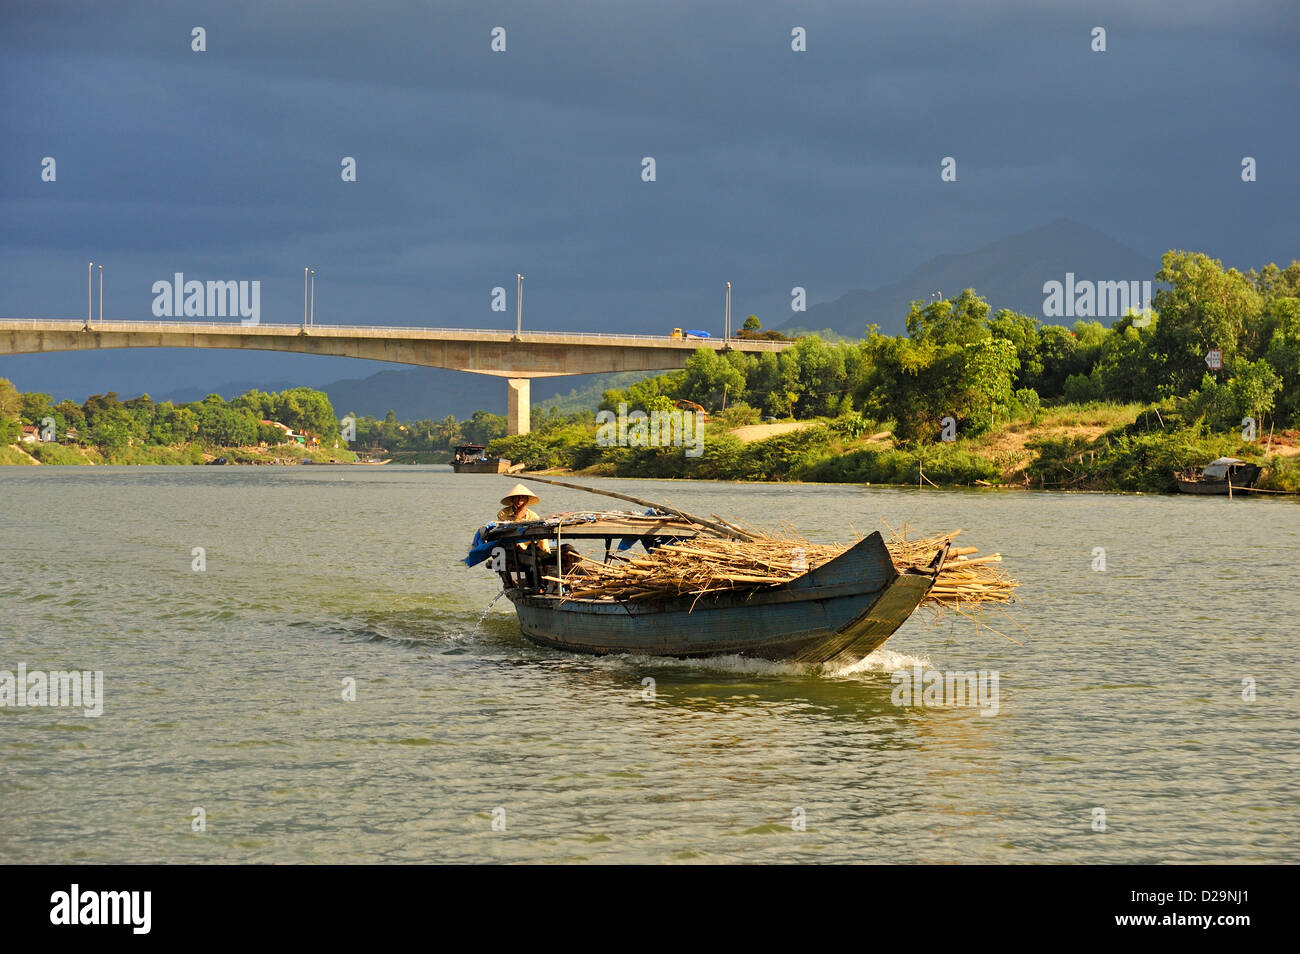 Boat carrying wood on the Perfume river, Hue, Vietnam - Stock Image